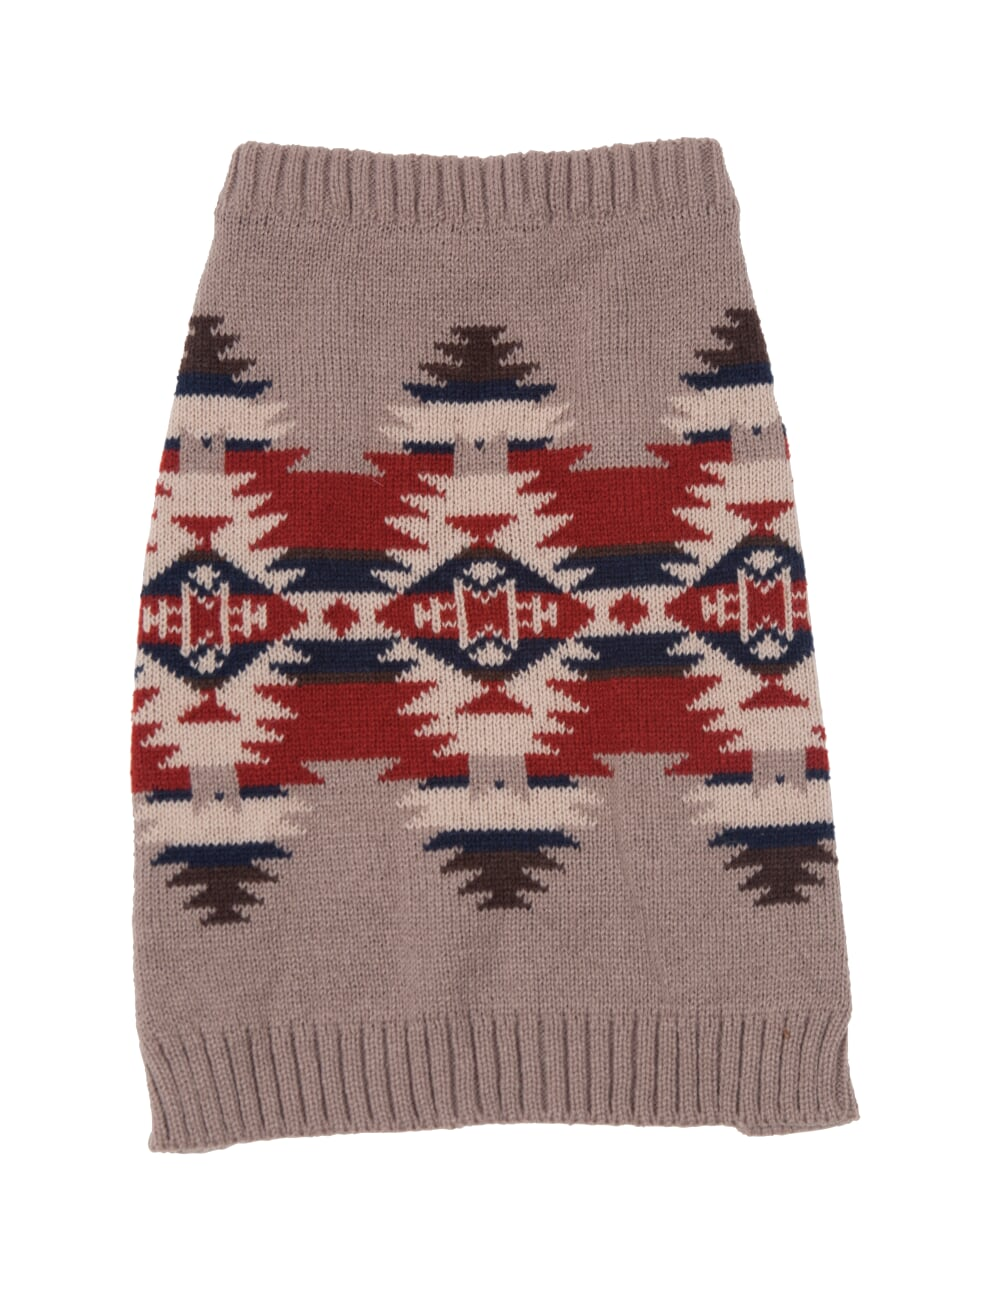 Pendleton Designer 100% Ultra-Soft Acrylic Timeless Mountain Majesty Style Warm Pet Dog Sweater